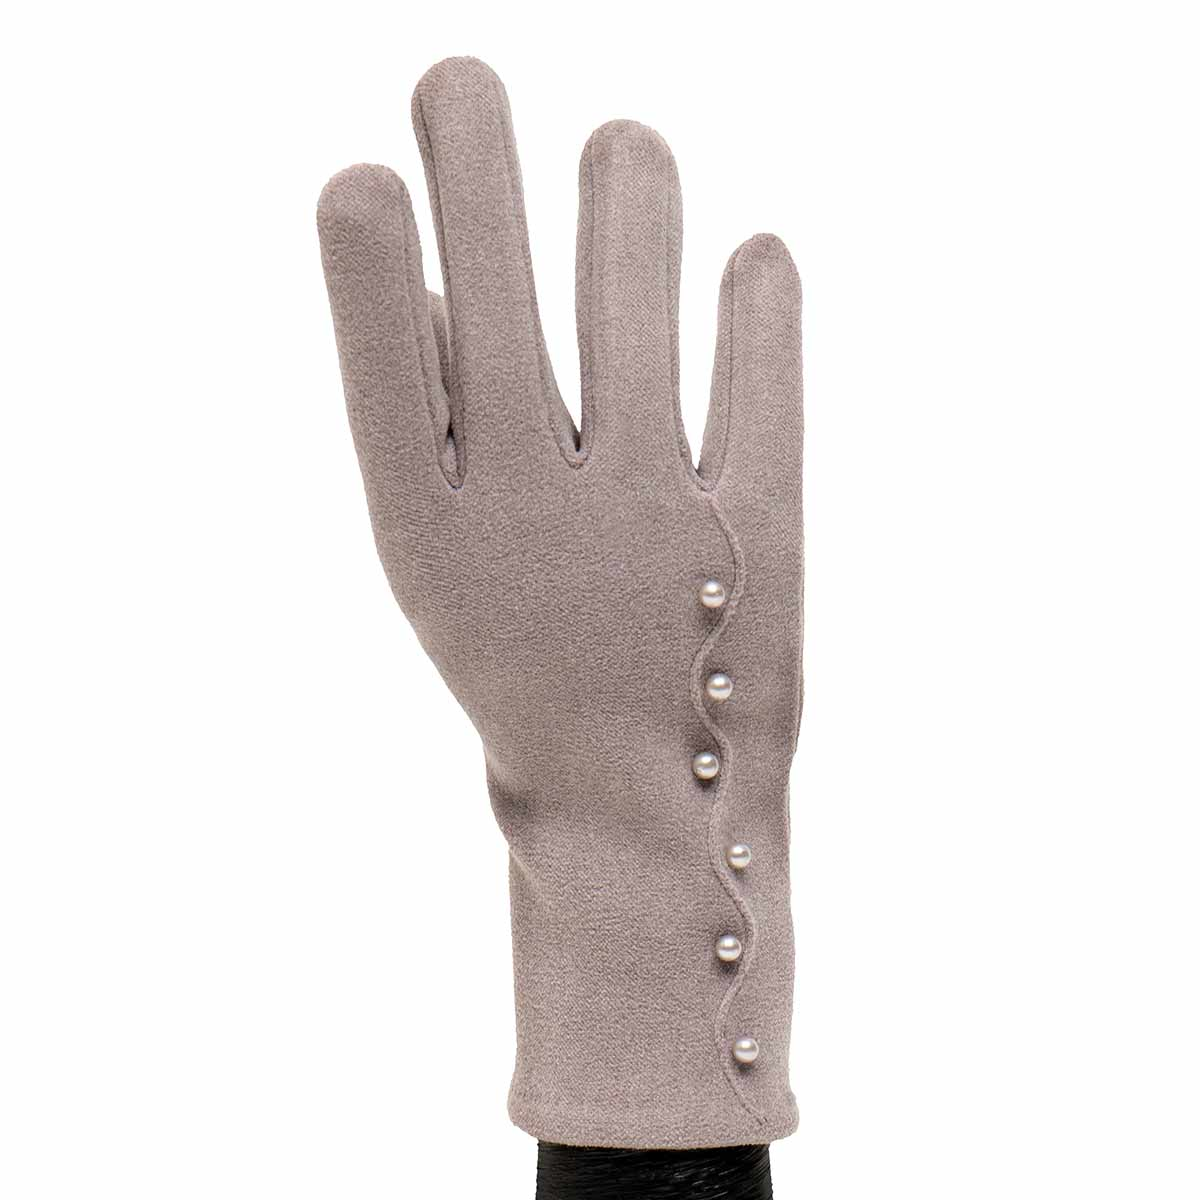 Grey Gloves with Pearls